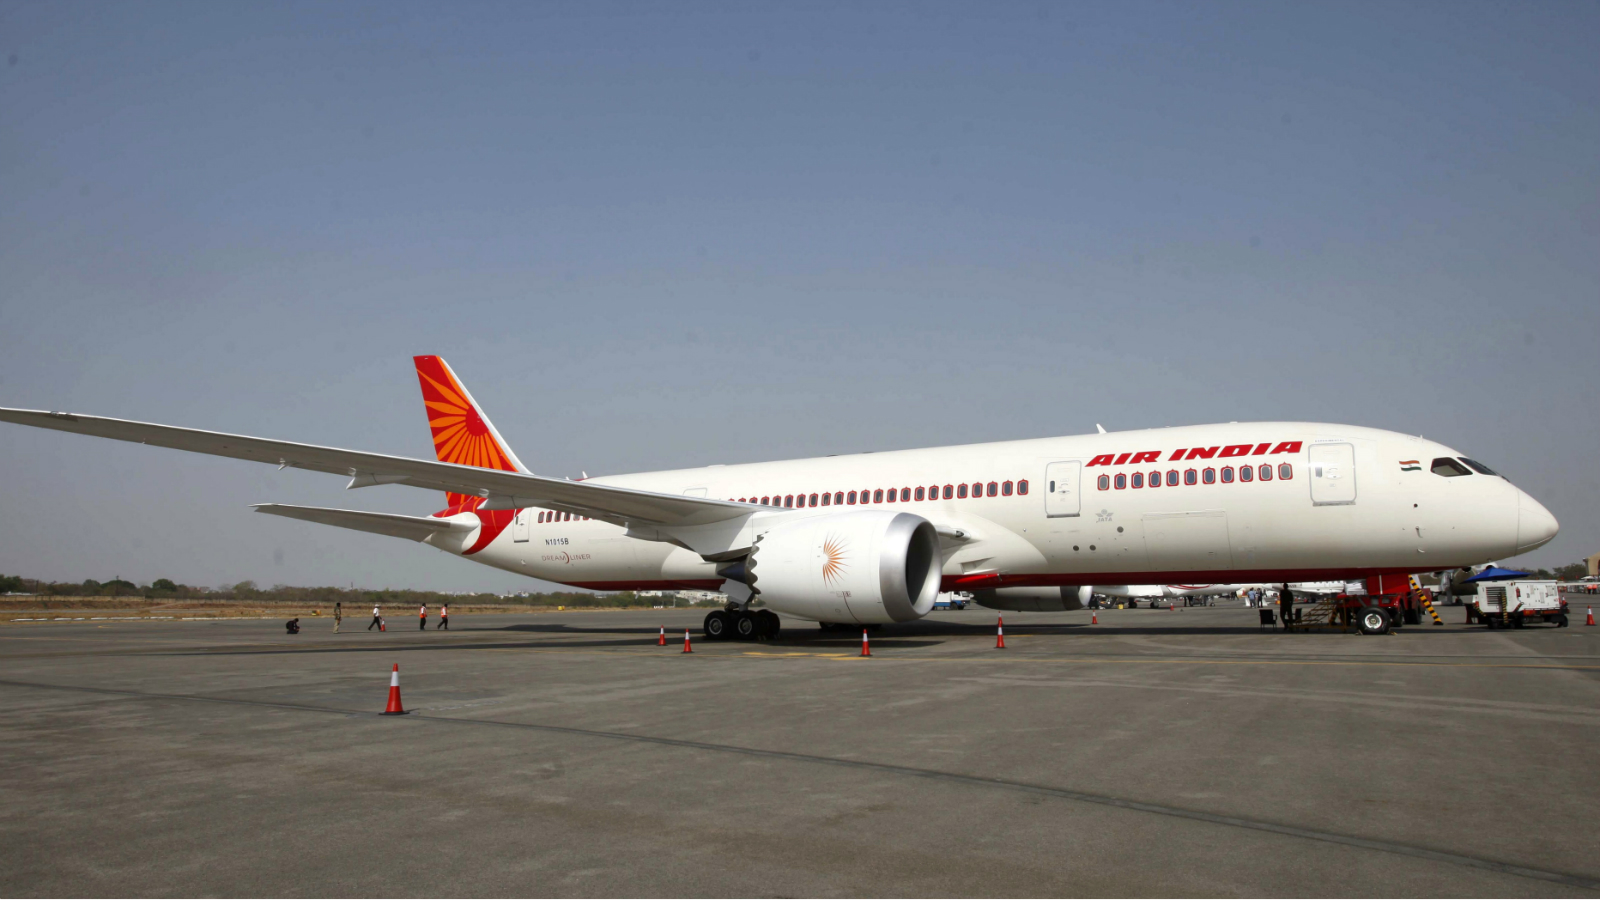 A newly inducted Air India Boeing 787-8 series Dreamliner aircraft stands on static display during the opening day of India Aviation 2012 in Hyderabad, India, Wednesday, March 14, 2012. The third international exhibition and conference on civil Aviation, a five day event, is scheduled to run from March 14-18, where some 250 companies will showcase the latest global aerospace technology at the event.